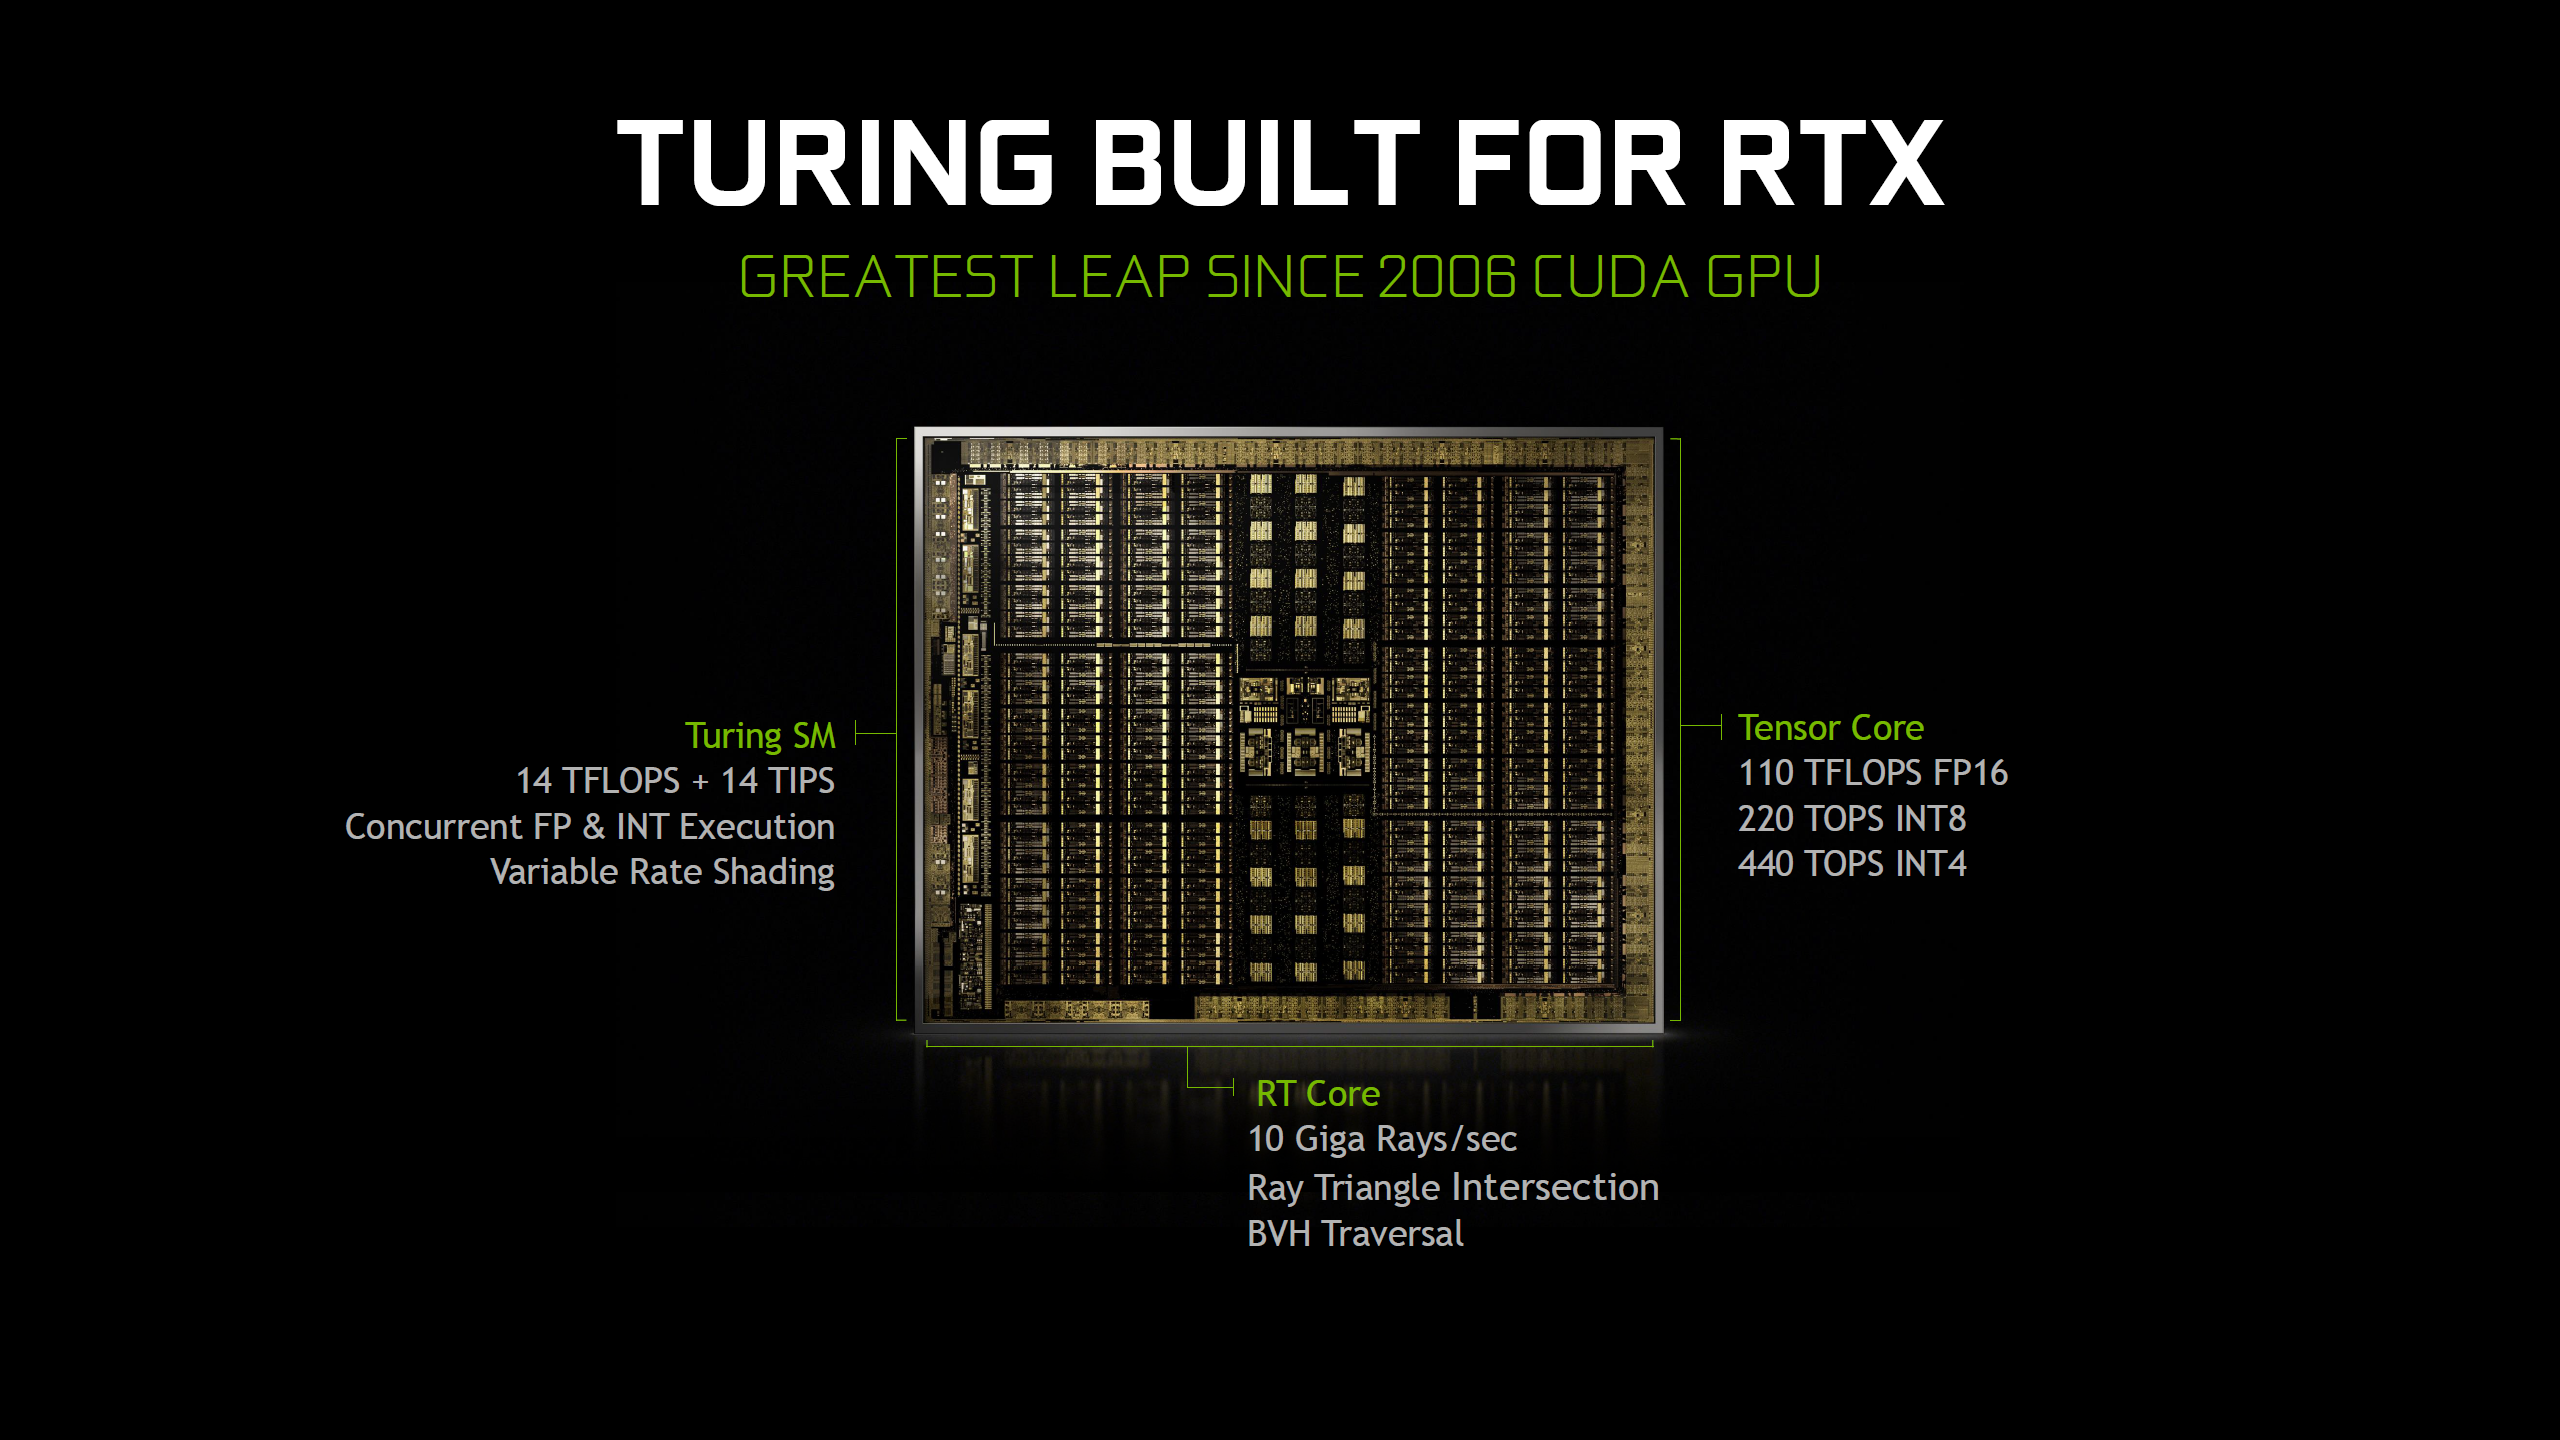 GeForce RTX - Analysis & How Ray Tracing & DLSS Works   Part 1